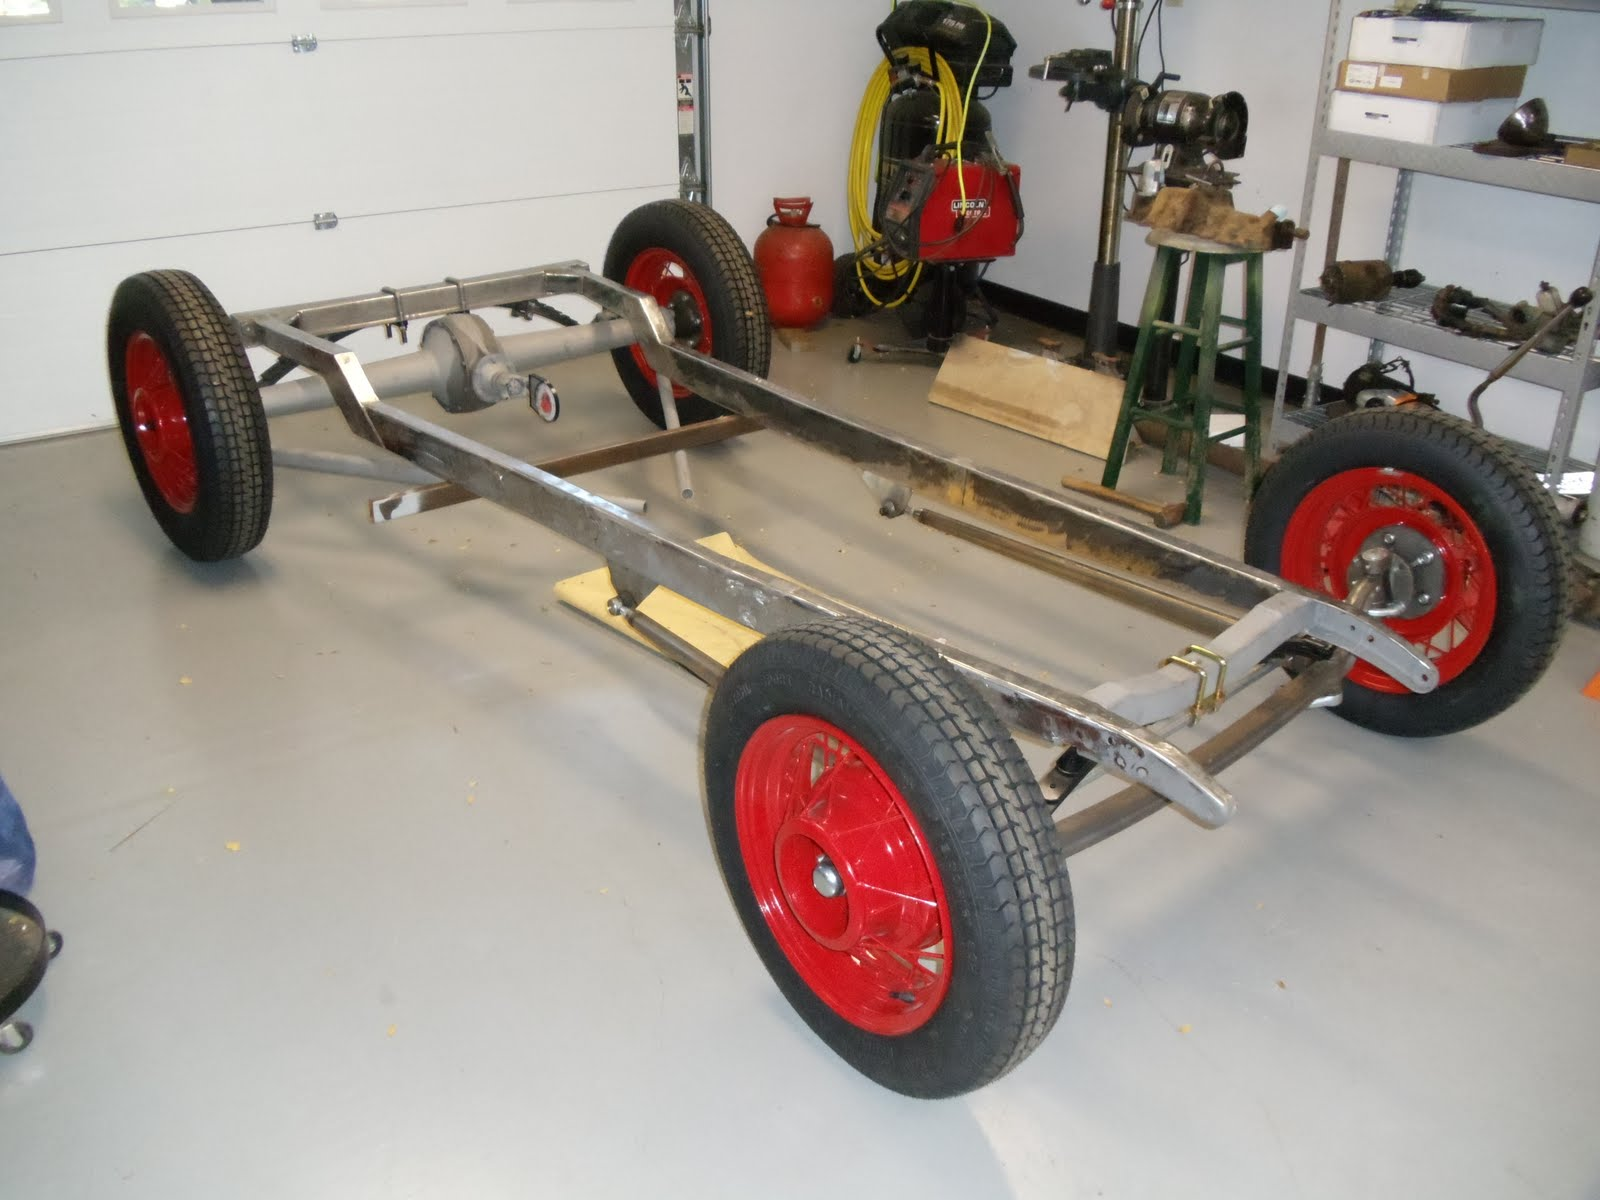 32 Ford Traditional Hot Rod: Ready for engine mounts